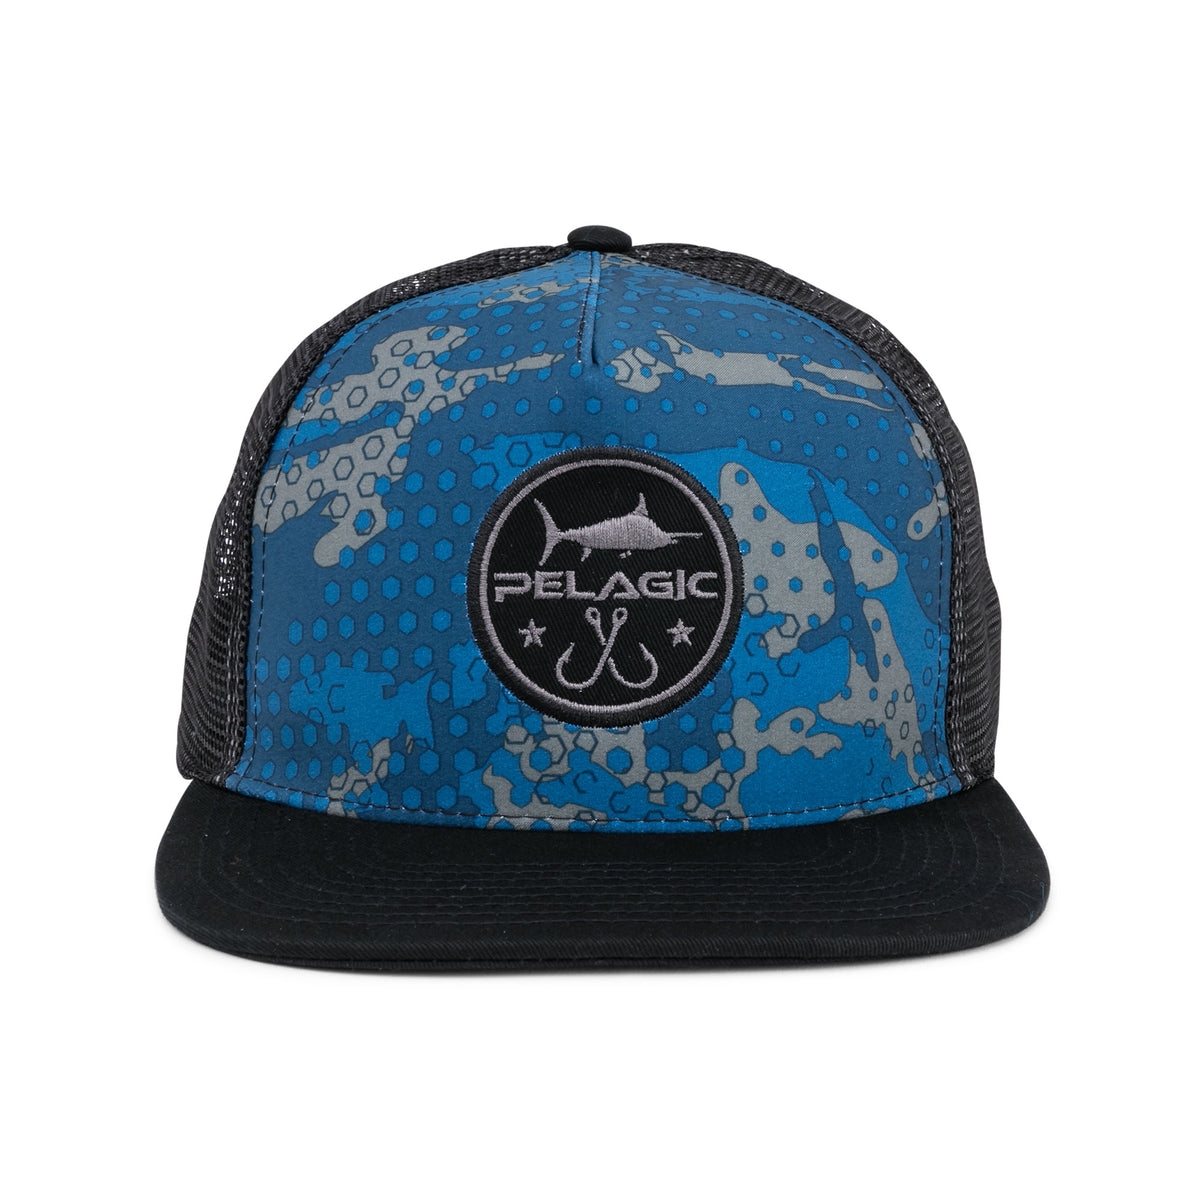 Ambush Camo Snapback Hat Big Image - 3